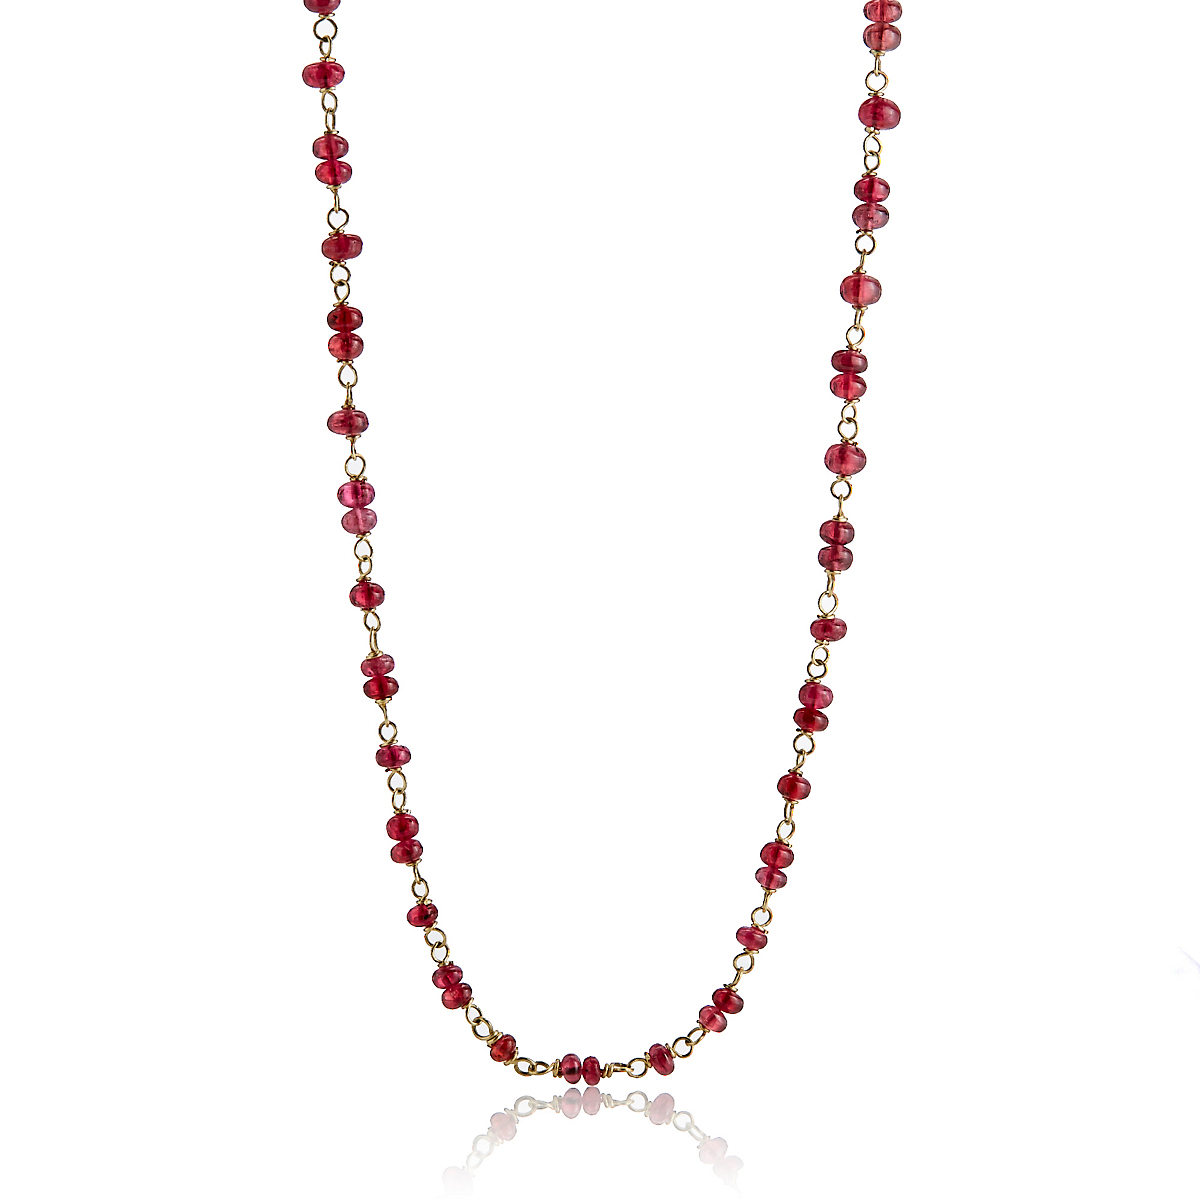 Adel Chefridi Pink Spinel Beads & Gold Necklace